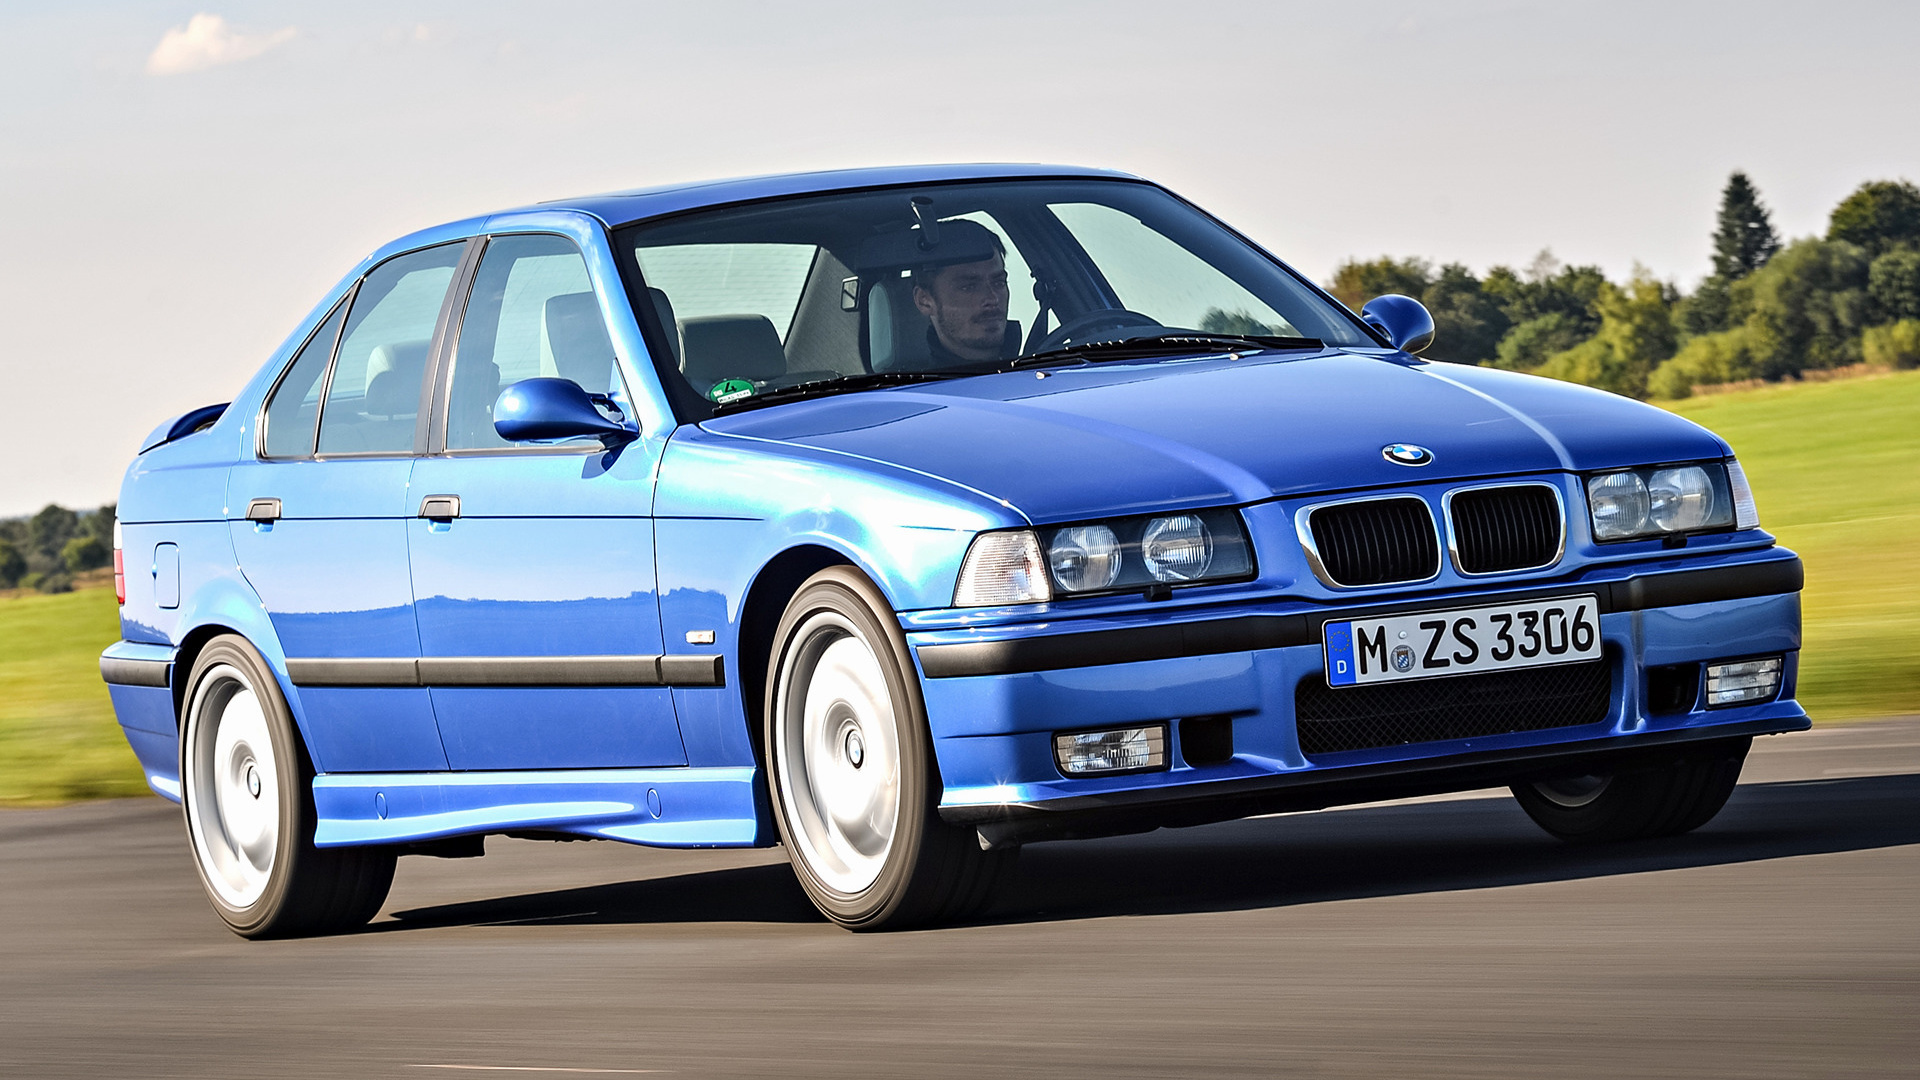 BMW M3 (1994) Wallpapers and HD Images - Car Pixel